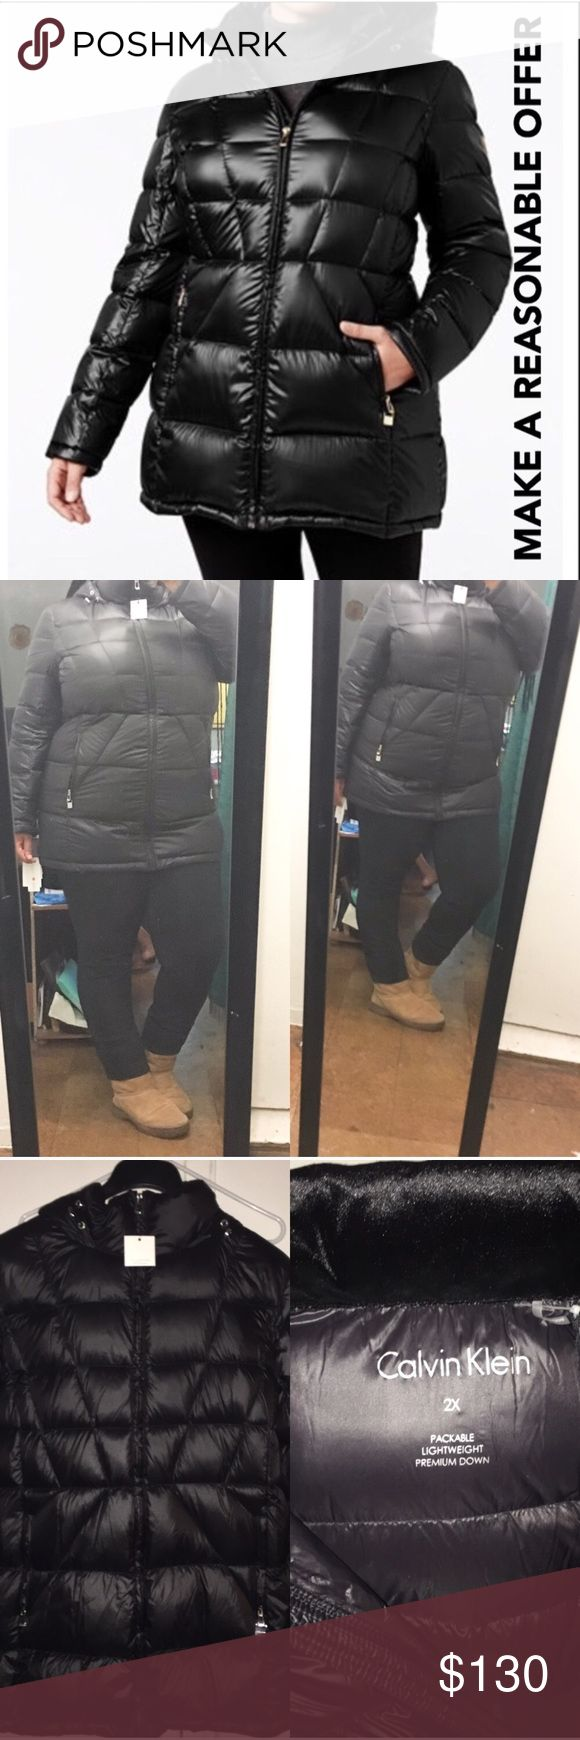 """🆕 Calvin Allen Plus Size Down Coat ✅ACCEPTING REASONABLE OFFERS🚫NO TRADES. Retails $240. STATS: """"33 Long, Polyester & spandex body, velvet hood lining. Lightweight as well as washable. This coat is ah may zin. True to size and super stylish. FOR REFERENCE : I'm 5'4 & a 42H Bra size. Questions welcomed Calvin Klein Jackets & Coats Puffers"""